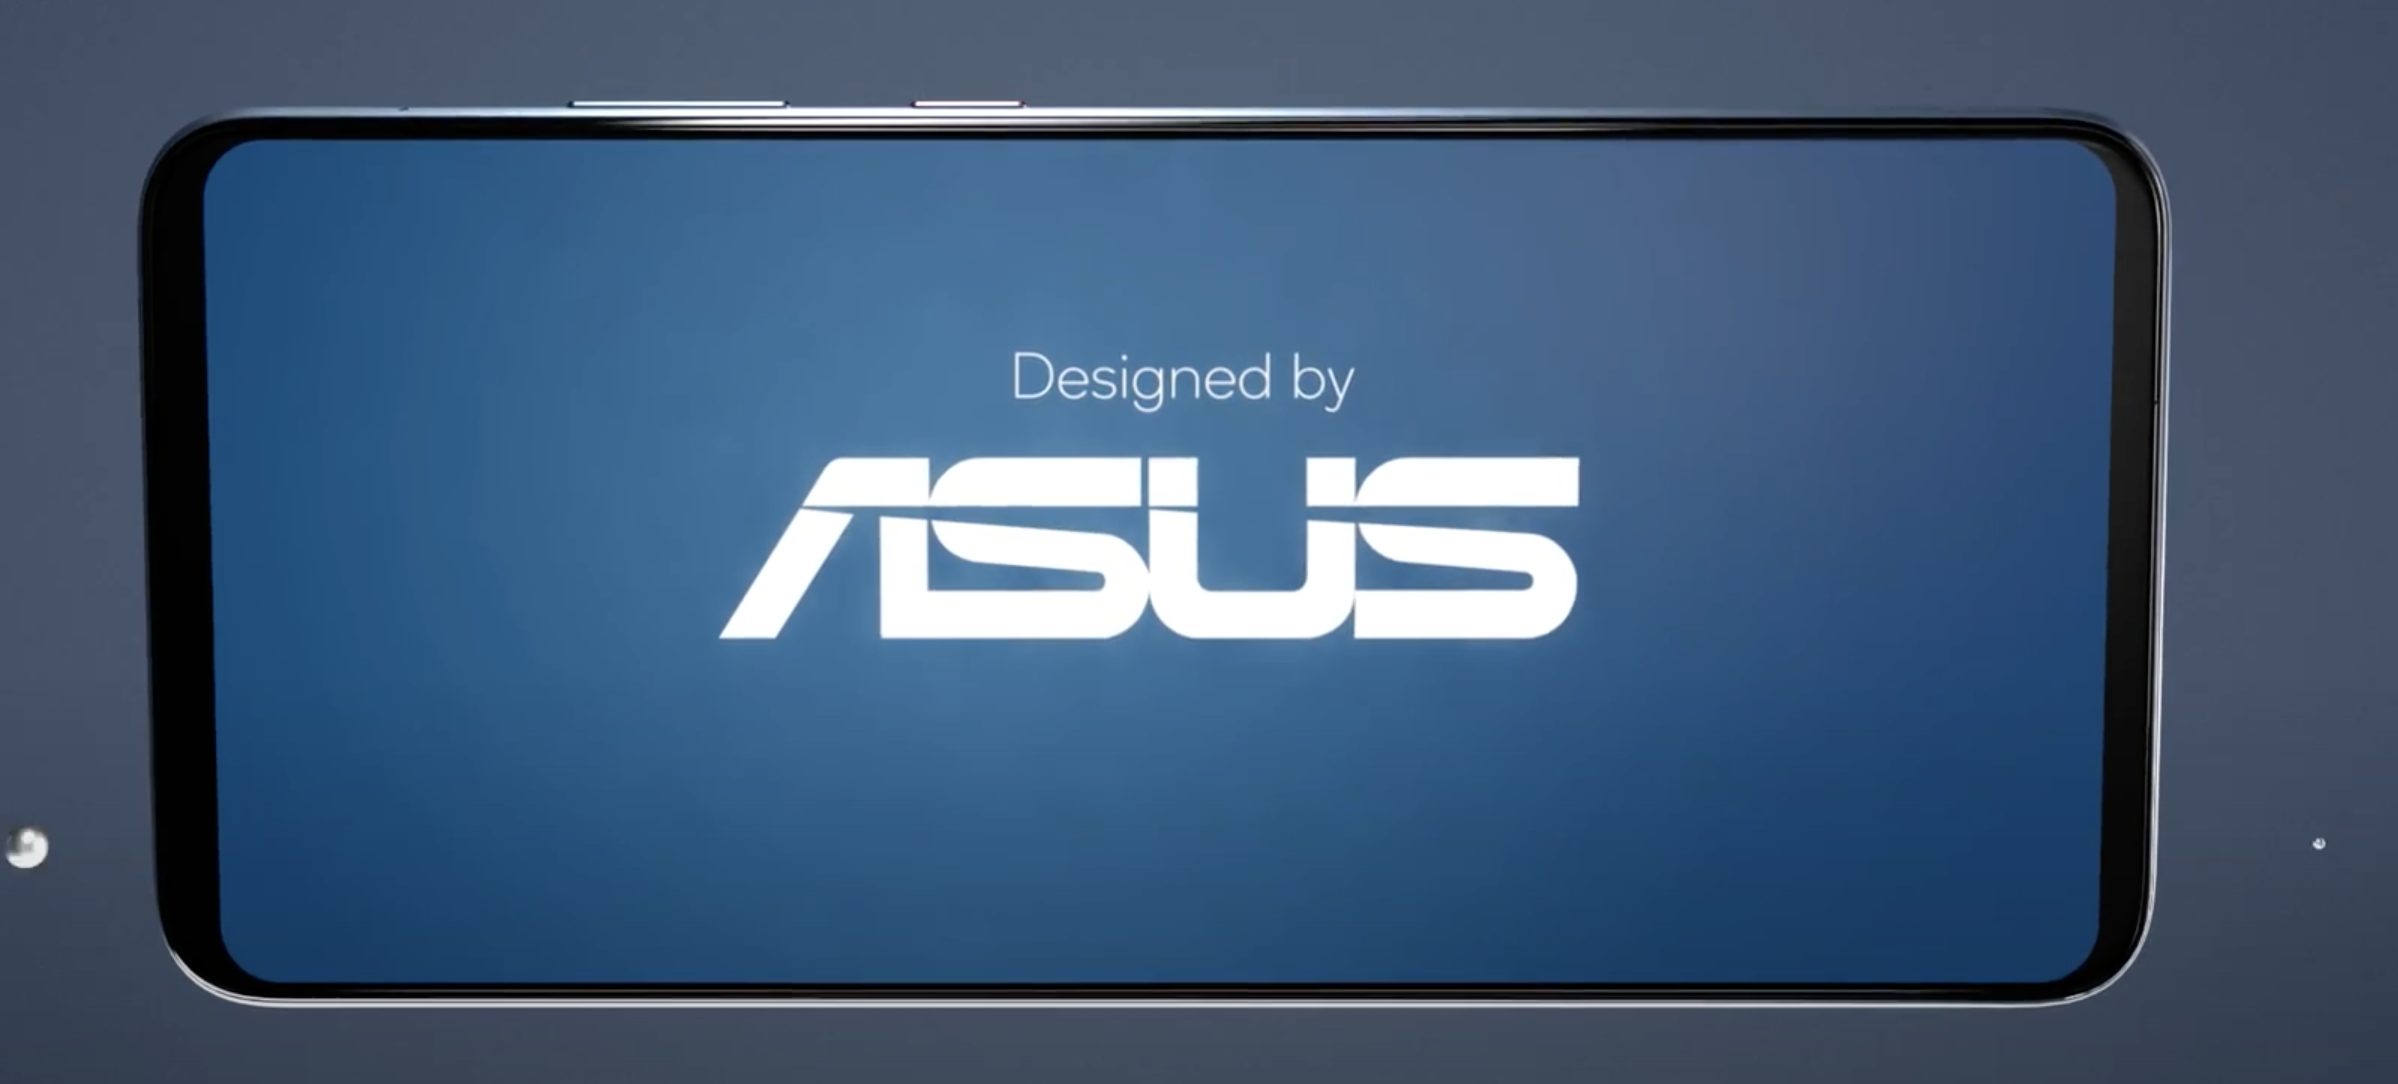 Snapdragon Insiders are getting a new Qualcomm and Asus phone     - CNET